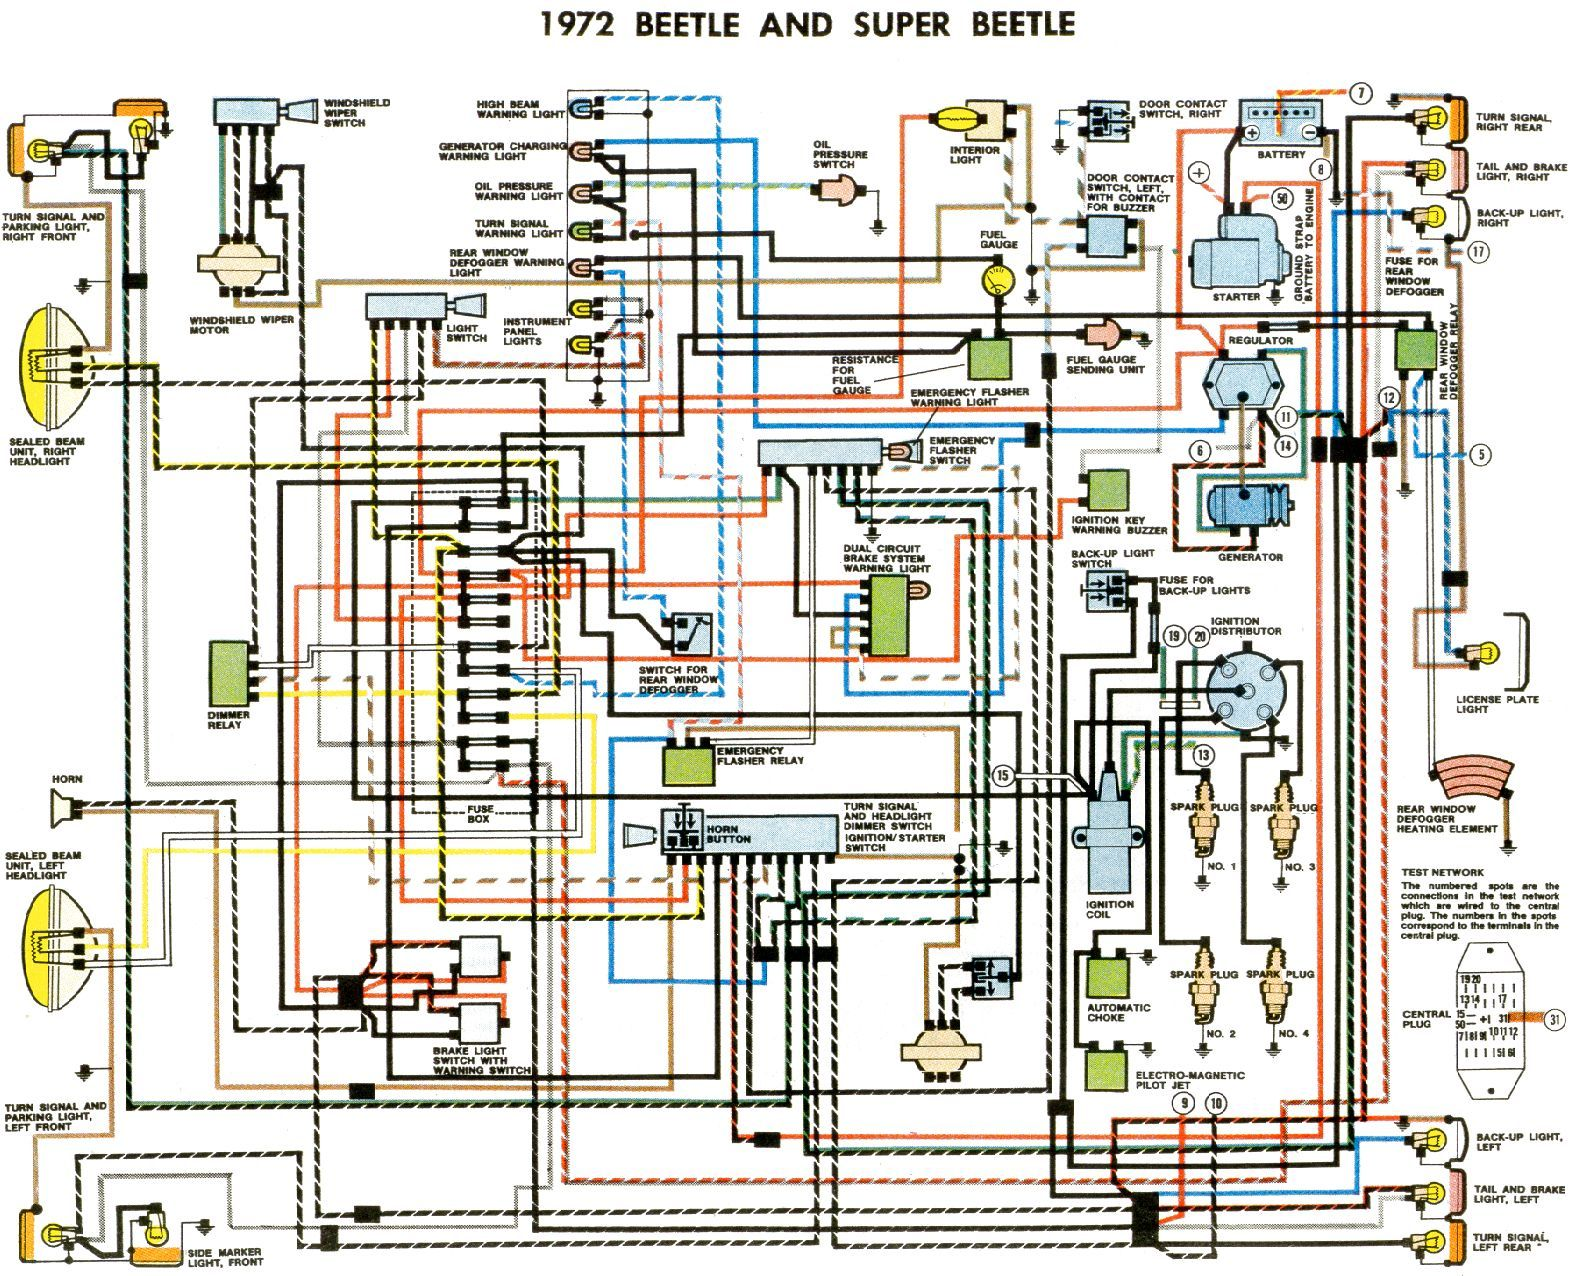 48817ac6ffbdd3287fe627e7db60a9d1 1949 vw wiring diagram on 1949 download wirning diagrams vw jetta electrical diagram at edmiracle.co